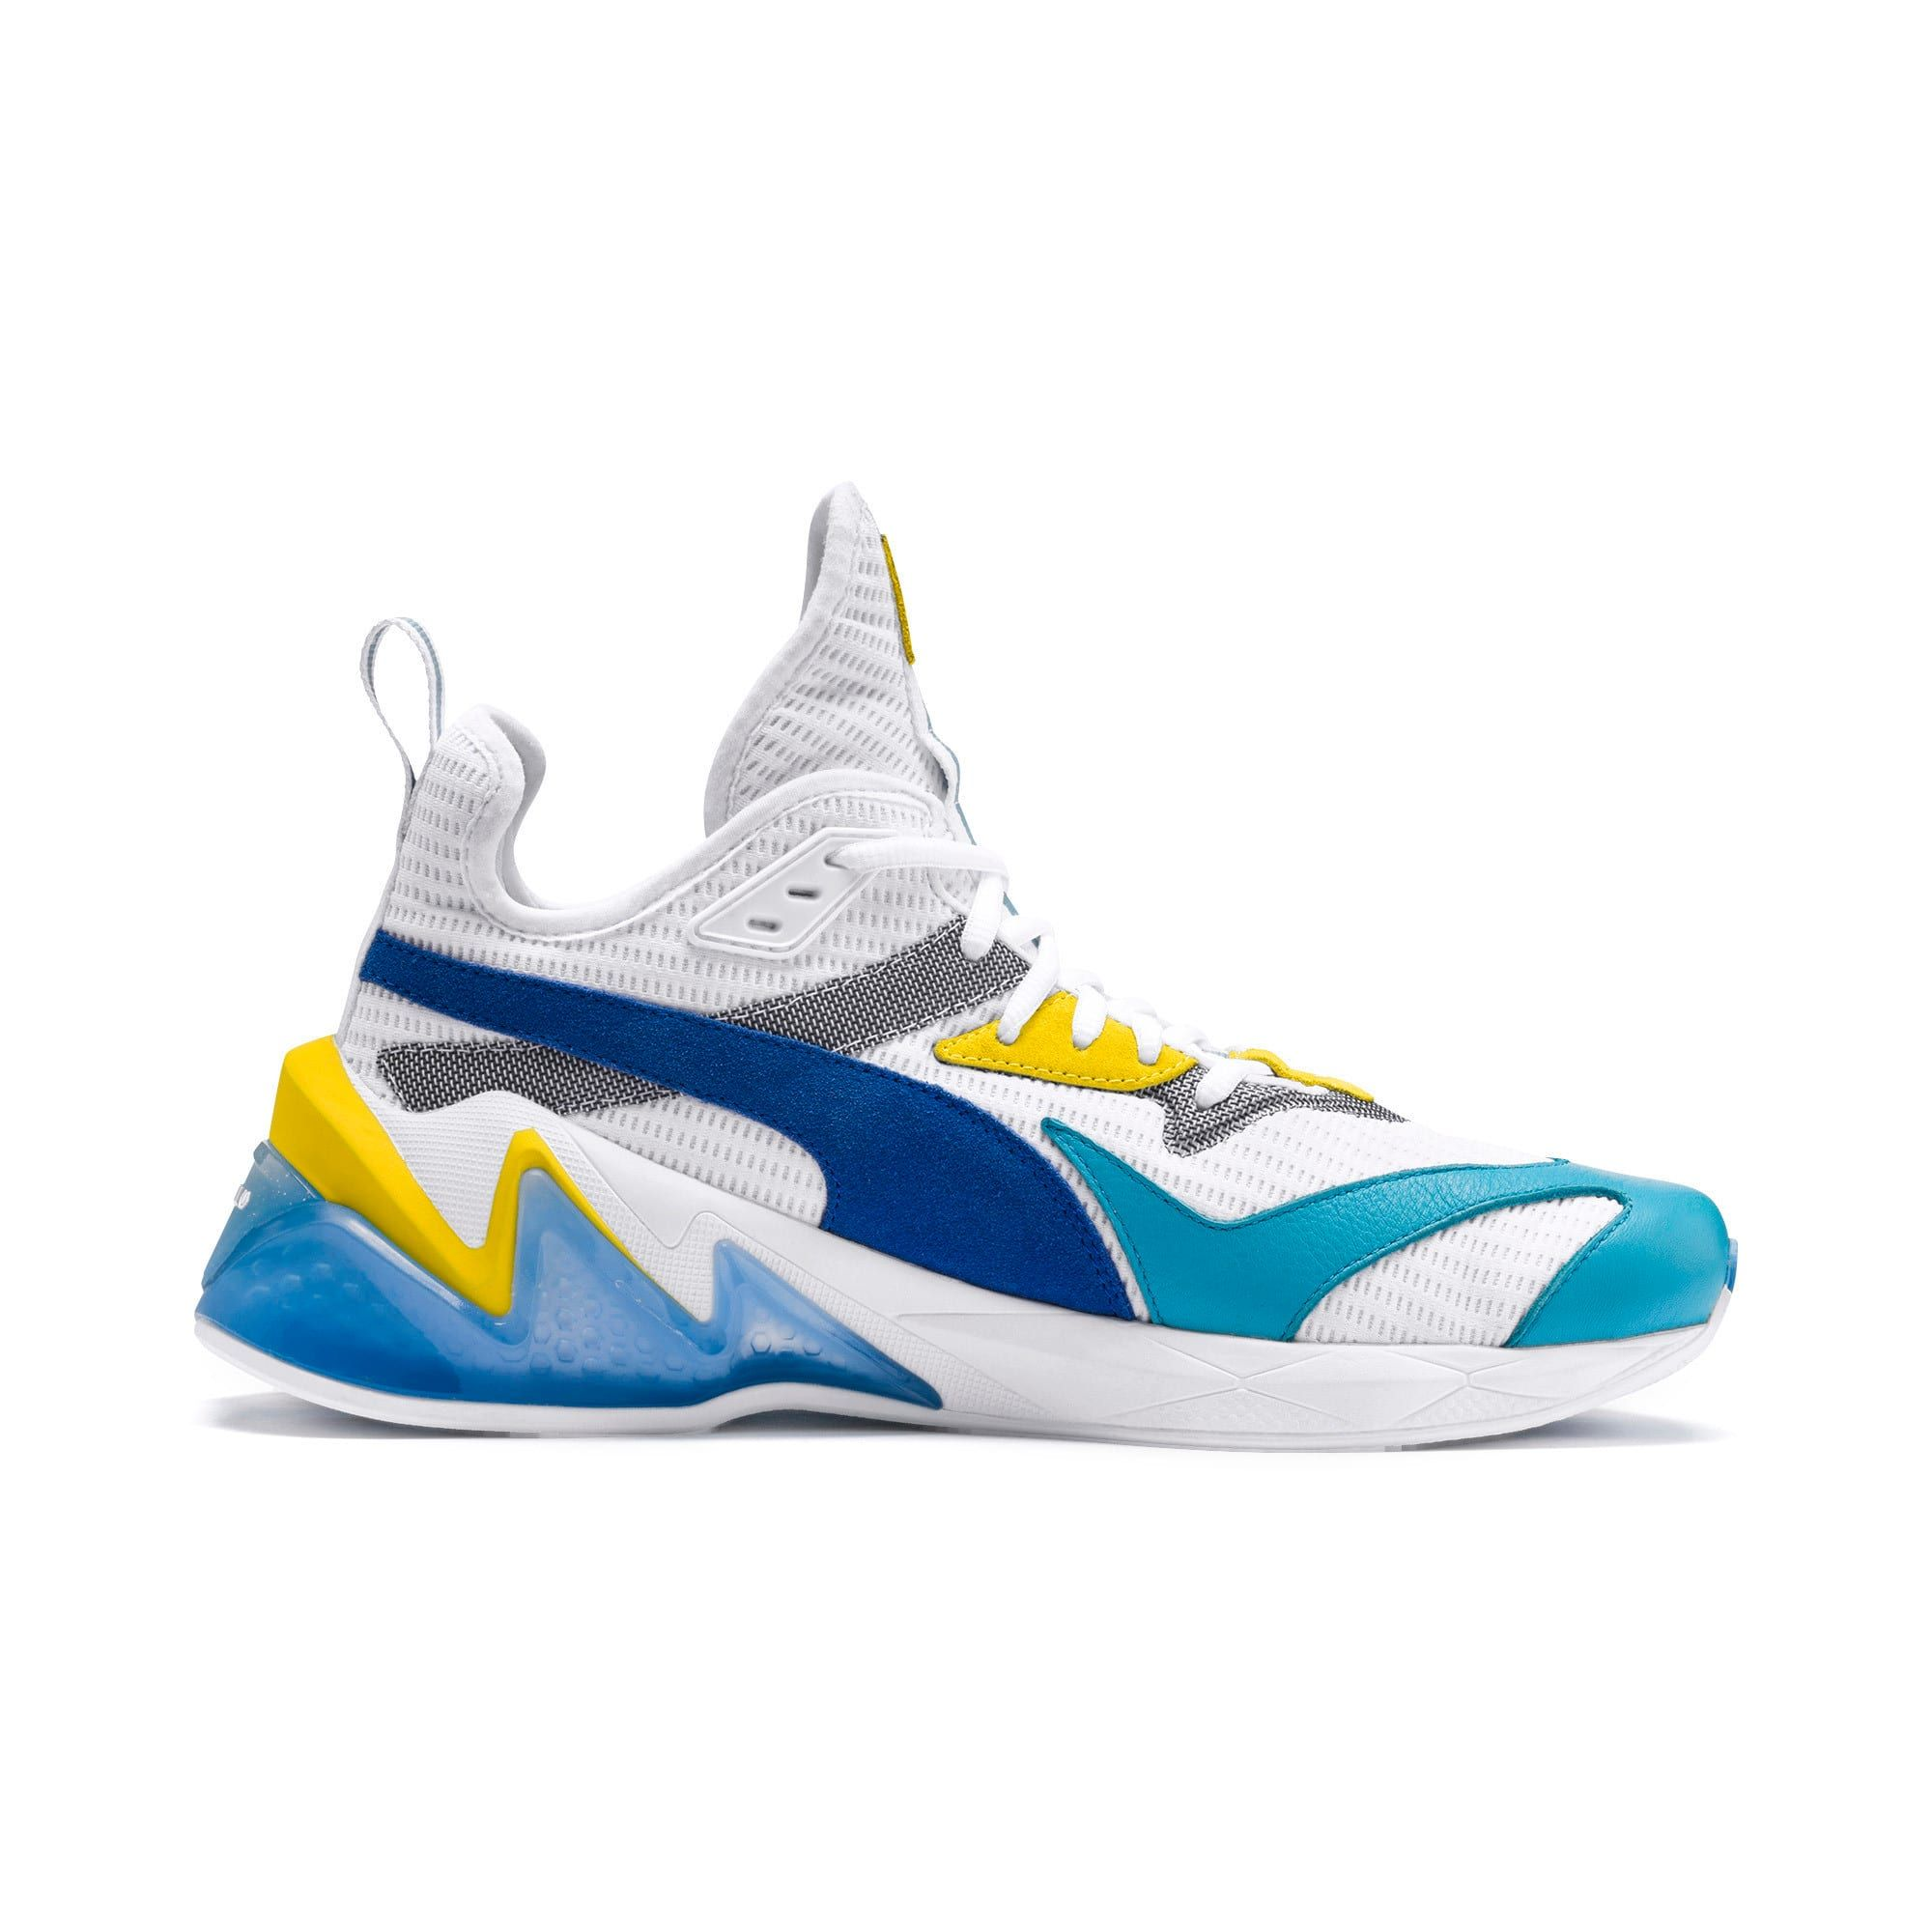 LQDCELL Origin Men's Shoes | Puma White-B Blue-Blz Yellow | PUMA LQD Cell Collection | PUMA United Kingdom #nikefreeoutfit